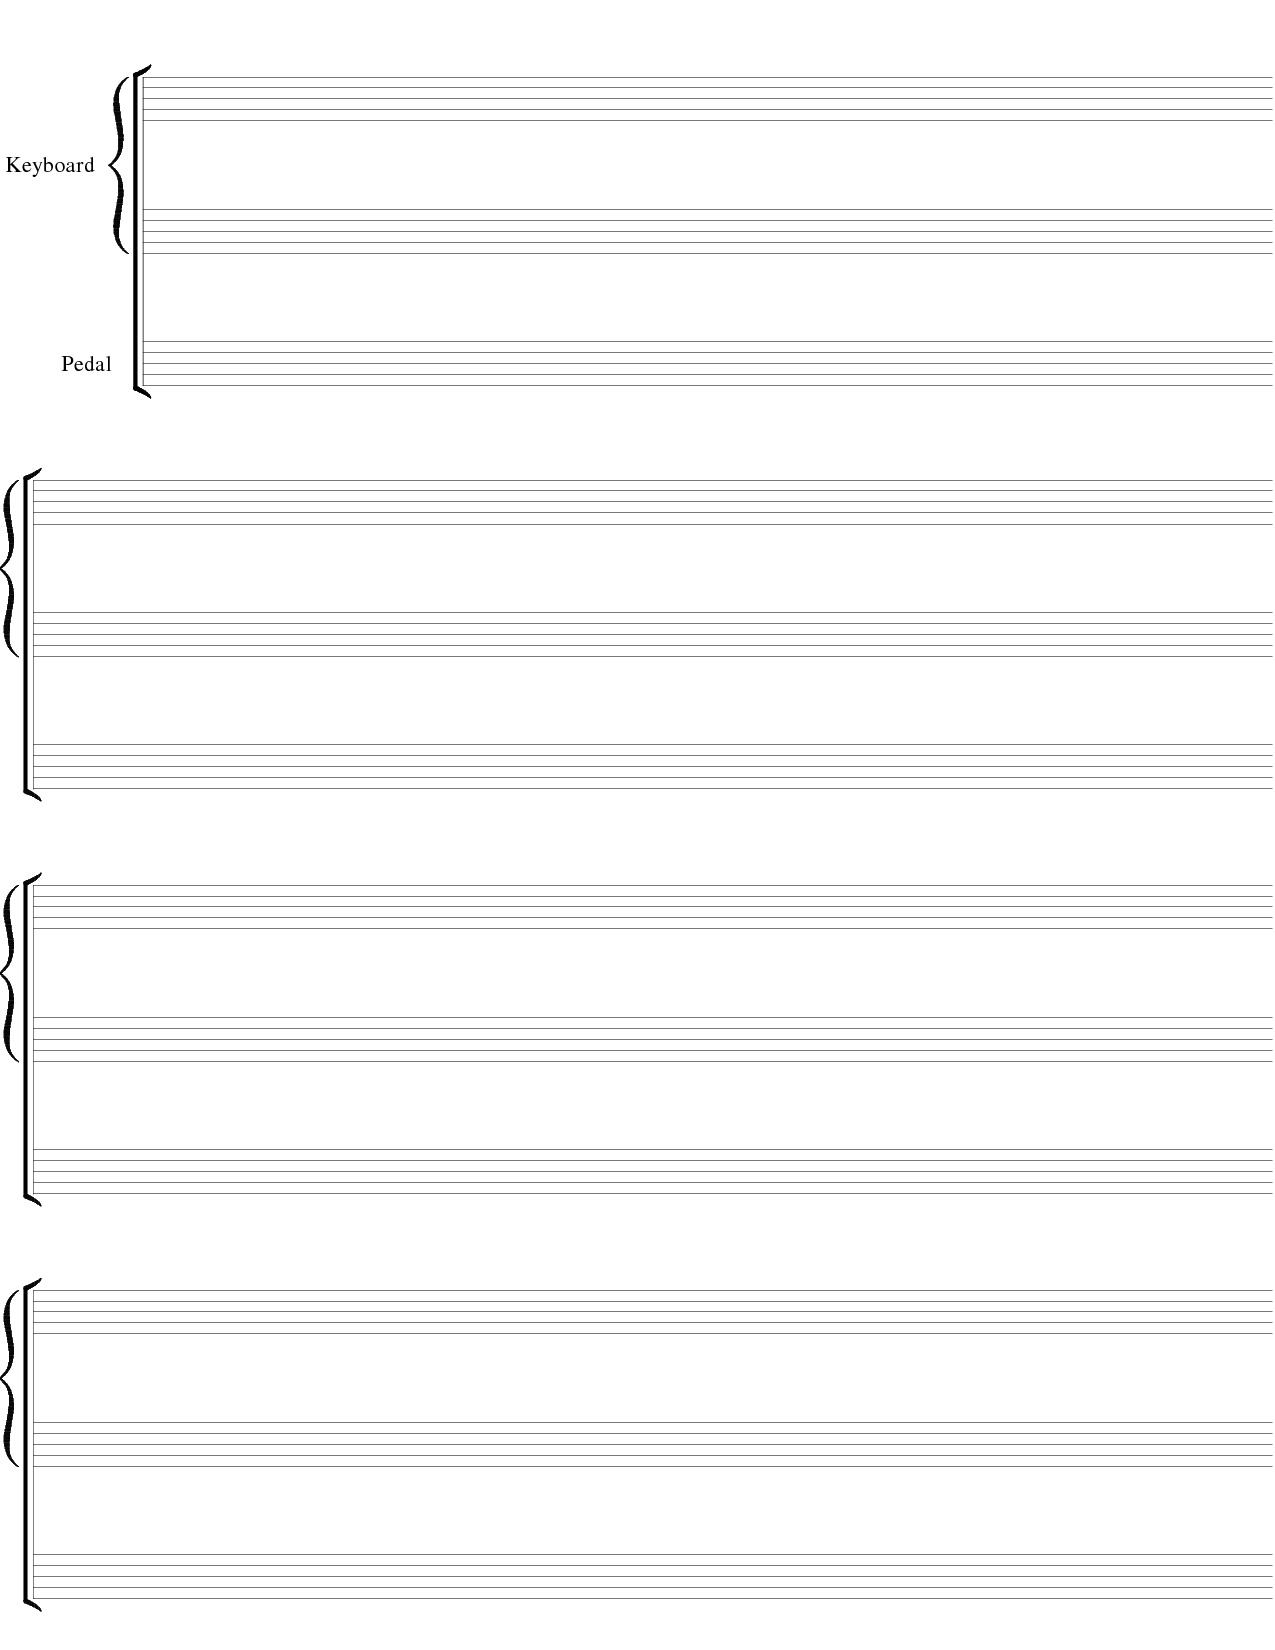 Blank Sheet Music Png & Free Blank Sheet Music Transparent - Free Printable Music Staff